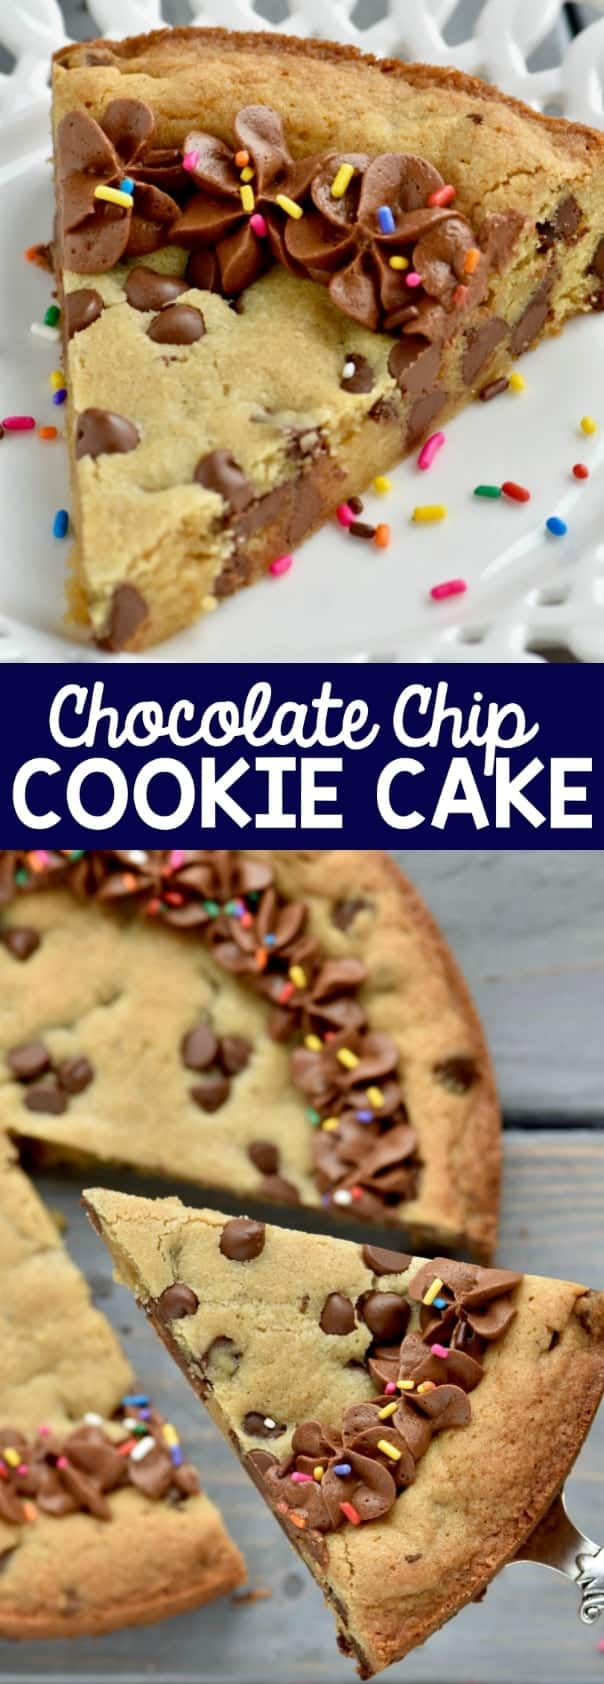 This Chocolate Chip Cookie Cake is perfect for celebrating with! Delicious and easy!